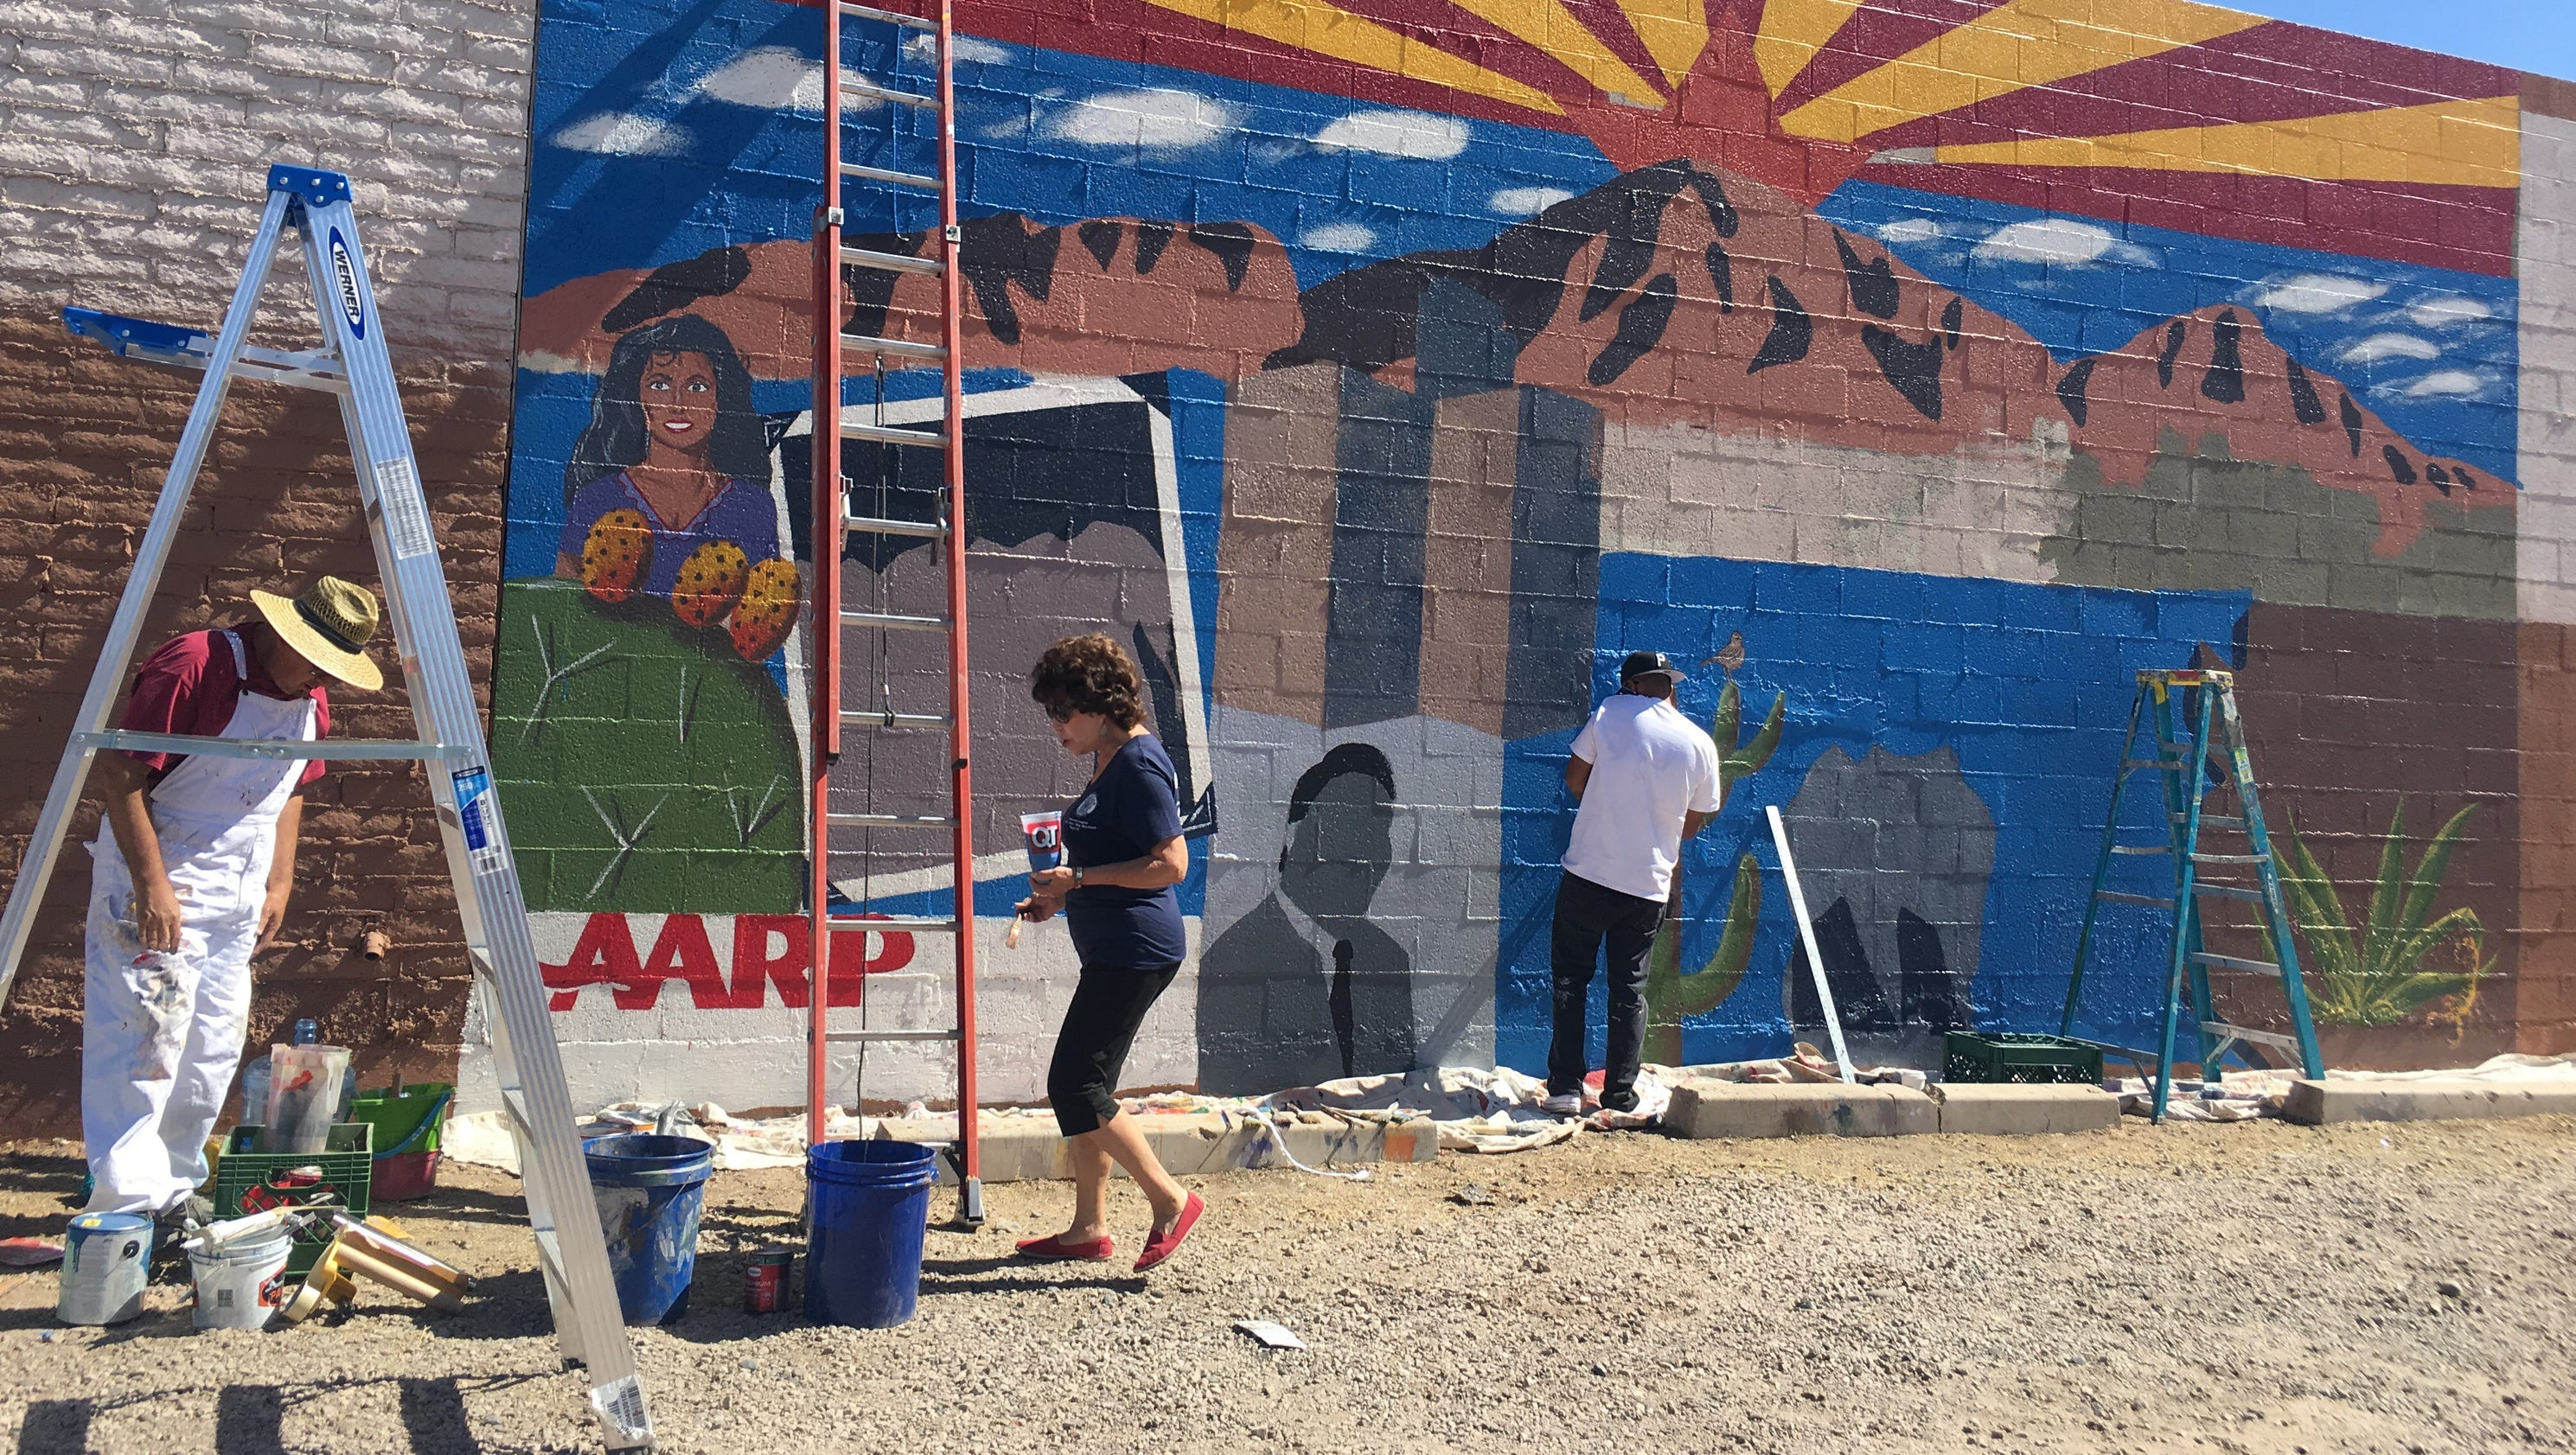 raul hector castro ed pastor featured in mural honoring latinos